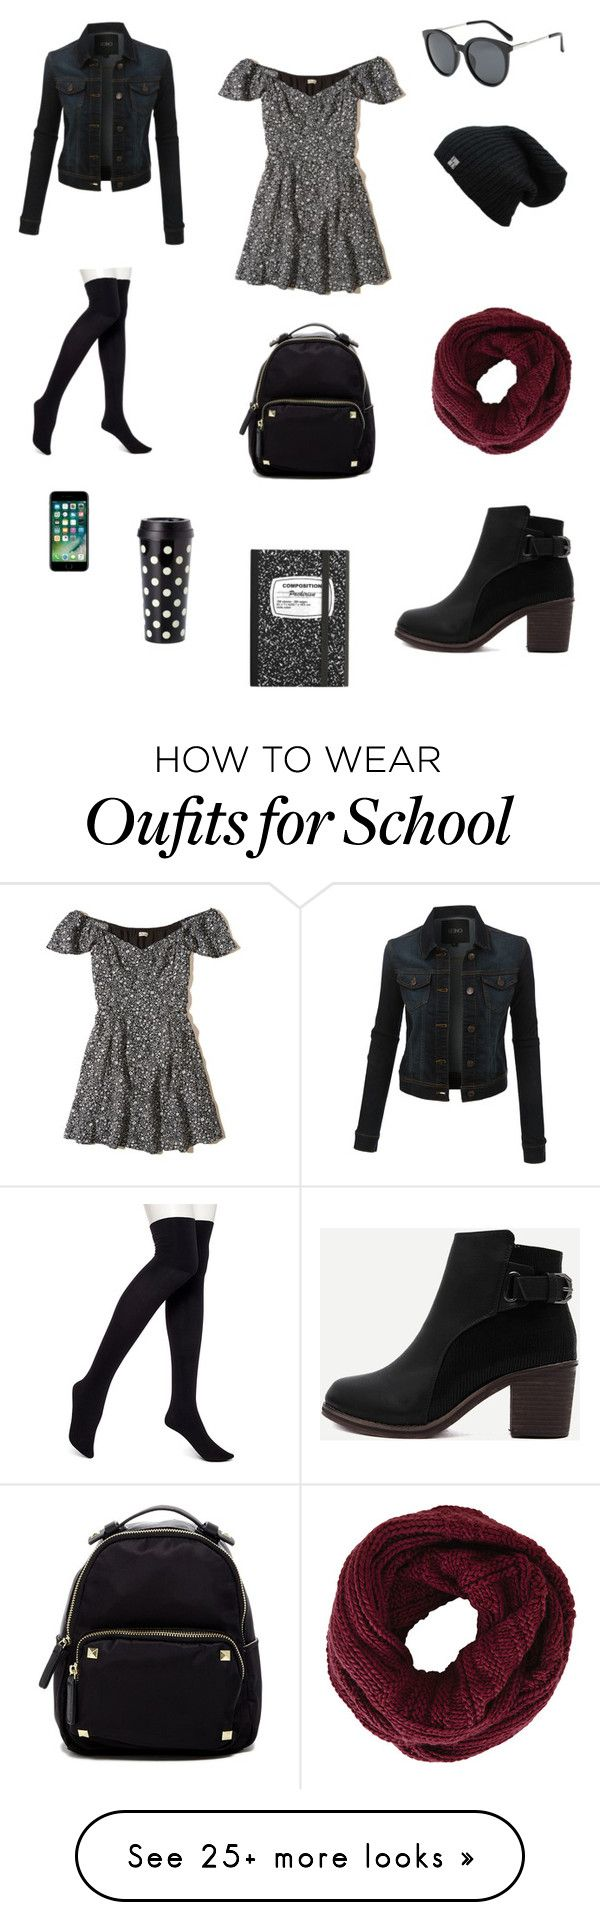 """Back To School"" by isabel-pasrod on Polyvore featuring Hollister Co., LE3NO, Hue, WithChic, Madden Girl, BCBGMAXAZRIA, Kate Spade, BackToSchool, outfit and dress"